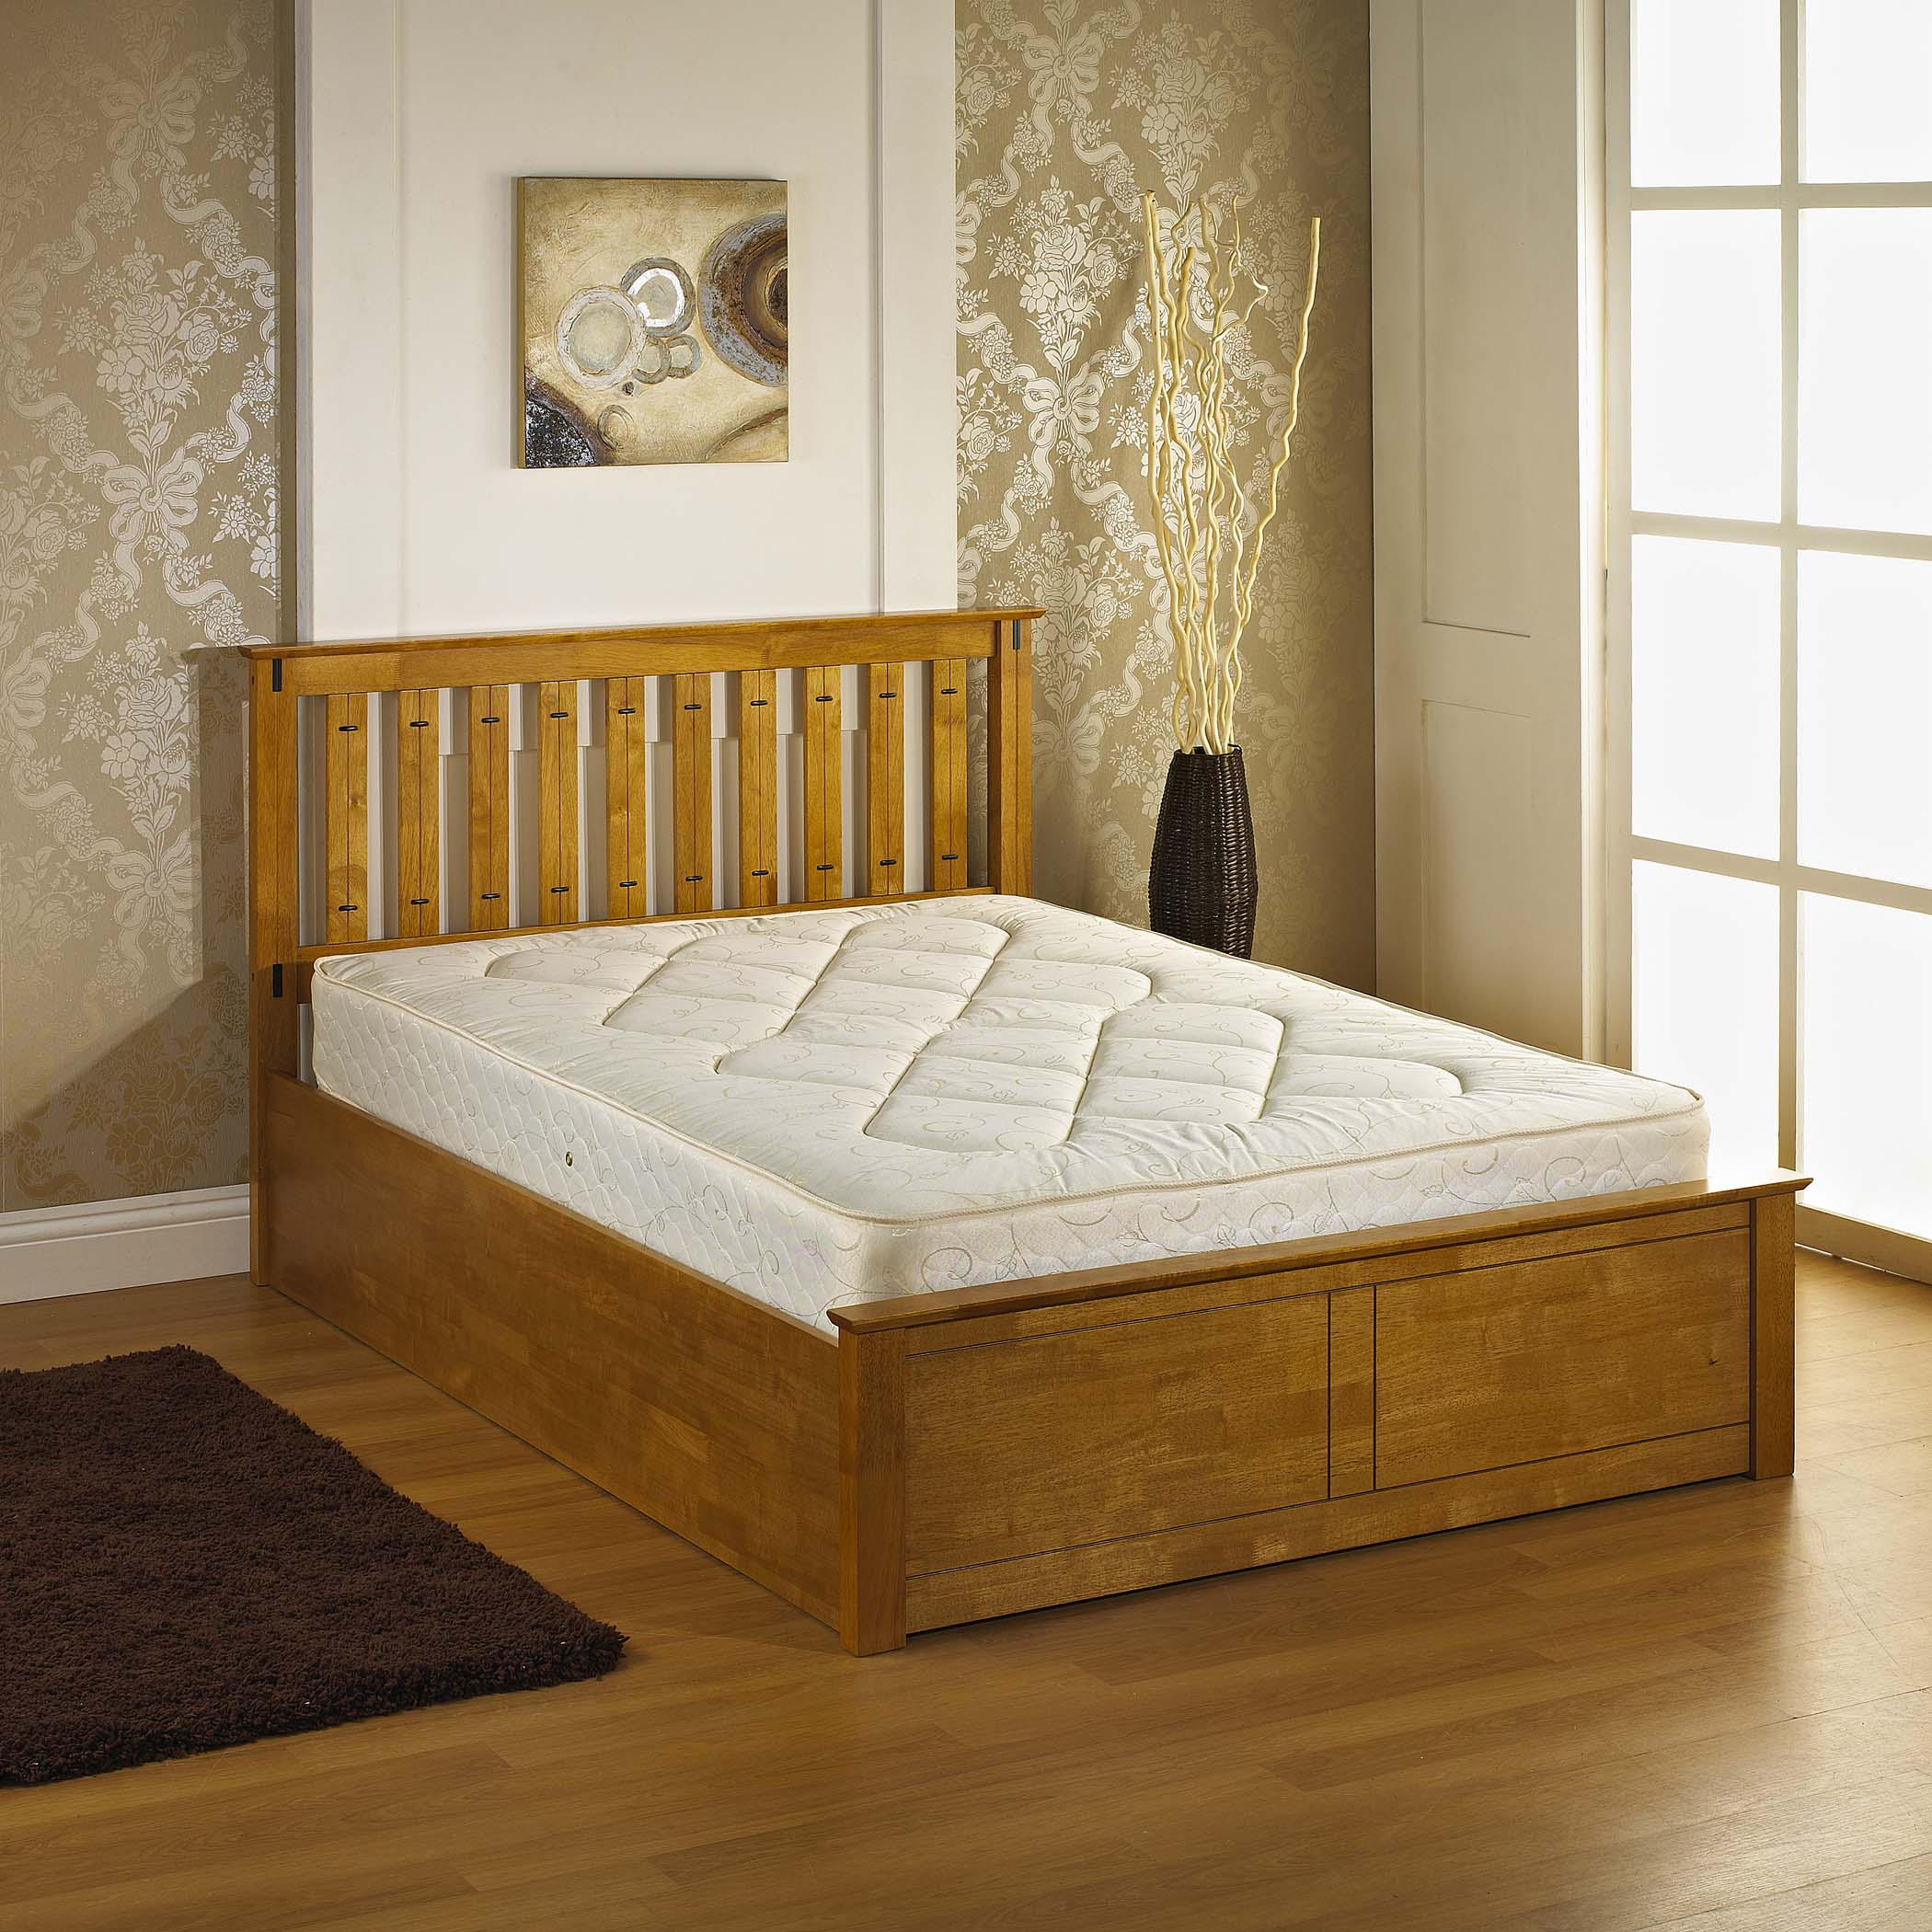 Picture of: The Italian Furniture Company Leeds Ltd Importers And Distributors Of Quality Furniture In The Uk Veronica Storage Bed